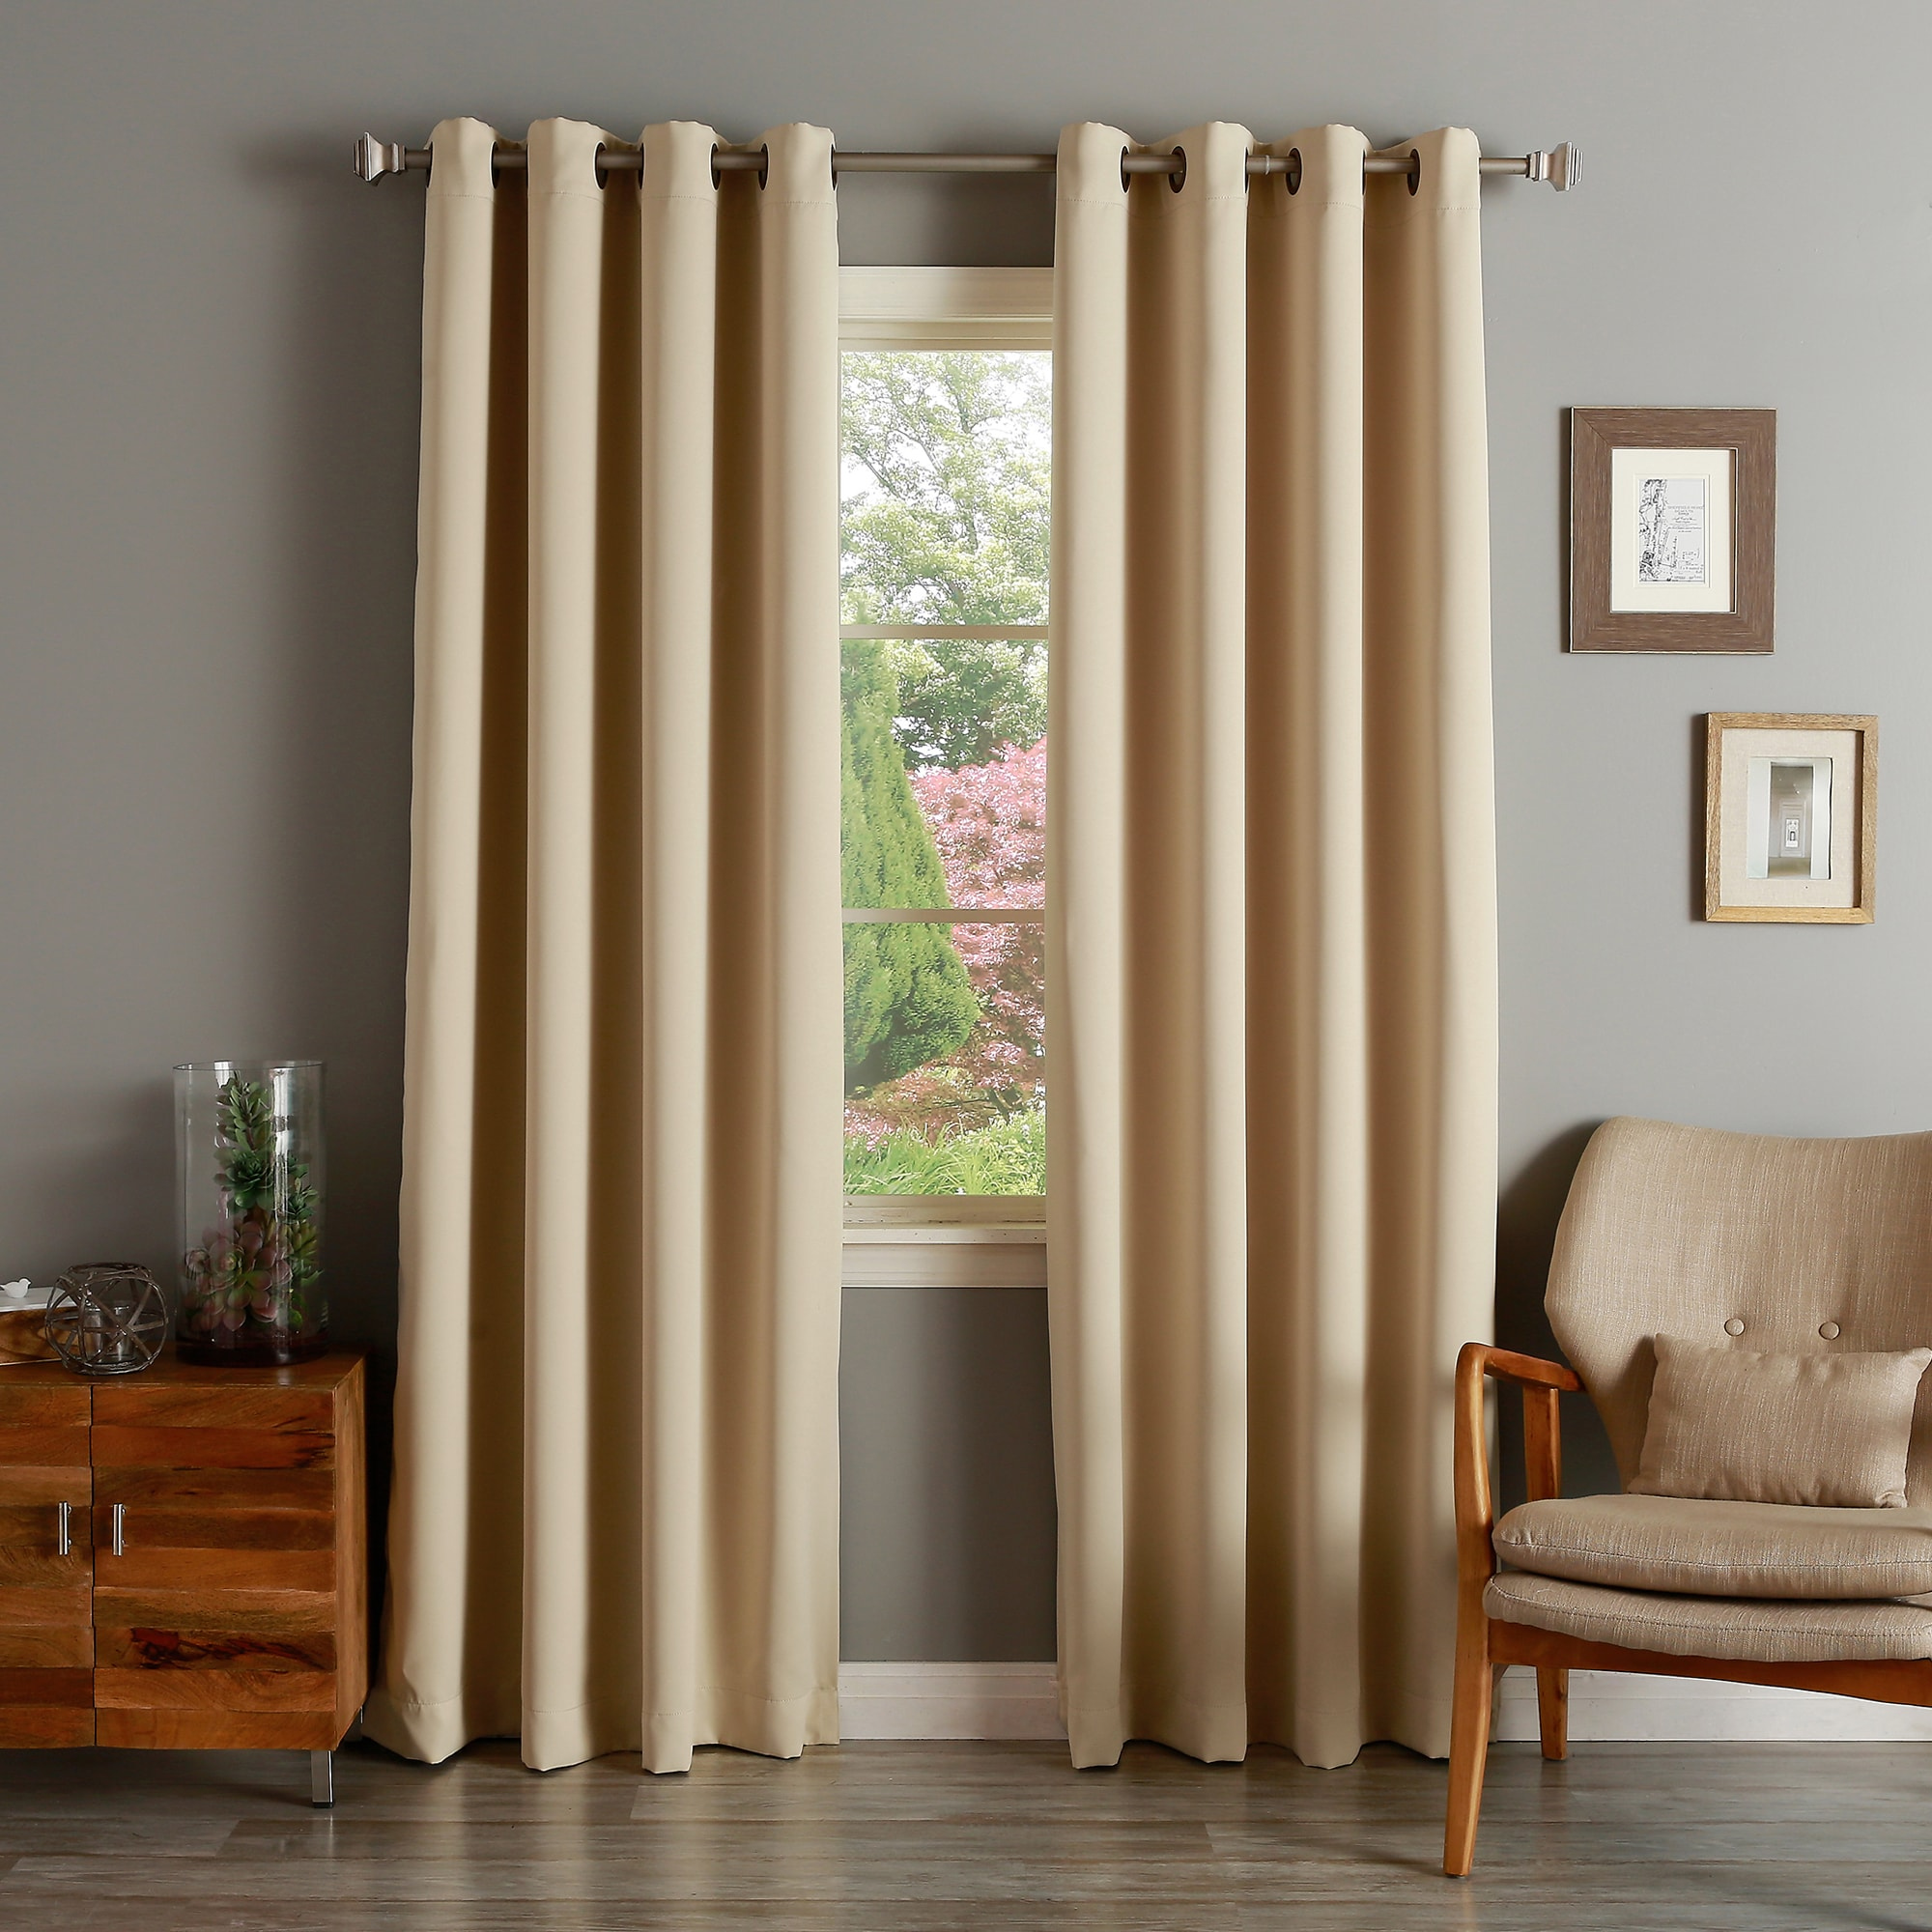 category inch autumn curtain do world drapes openweave rugs curtains xxx leaves top window market treatments grommet